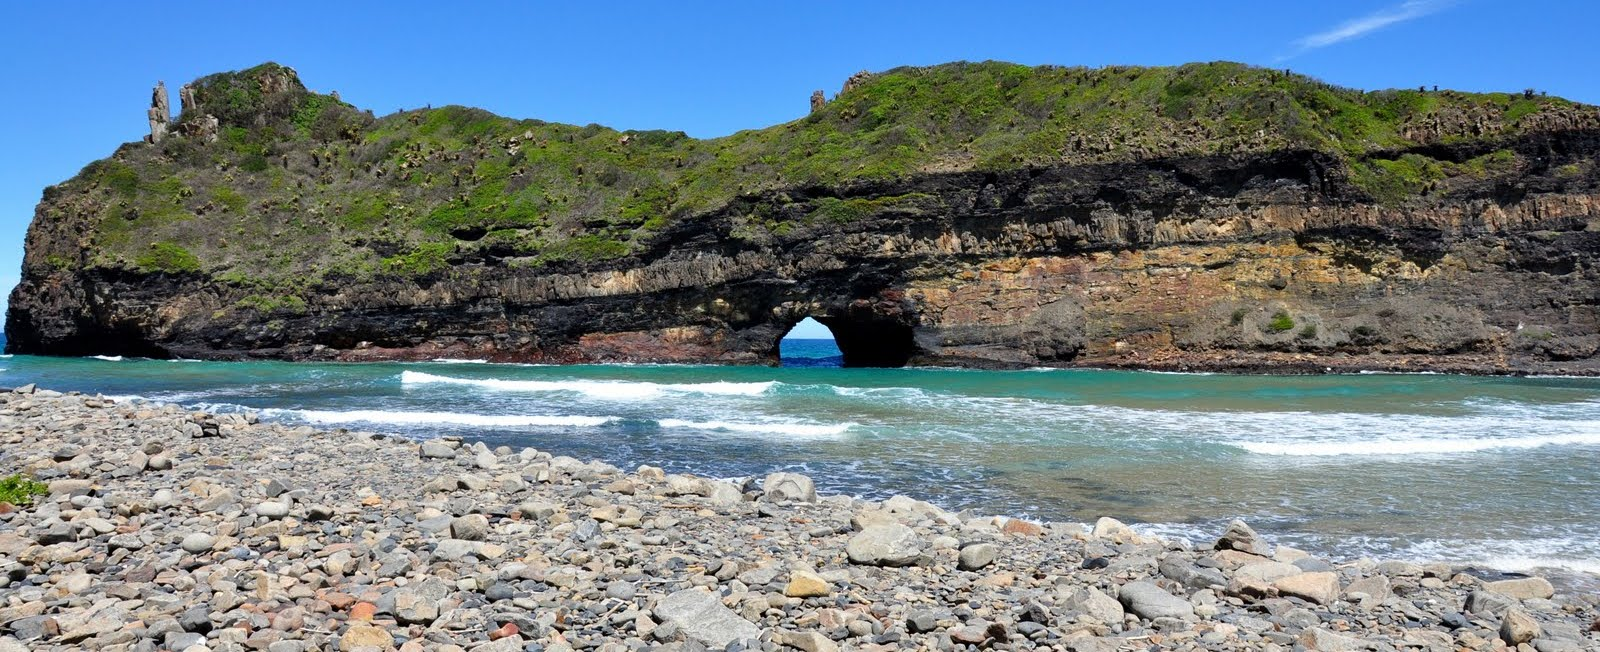 Coffee Bay - Hole-in-the-Wall